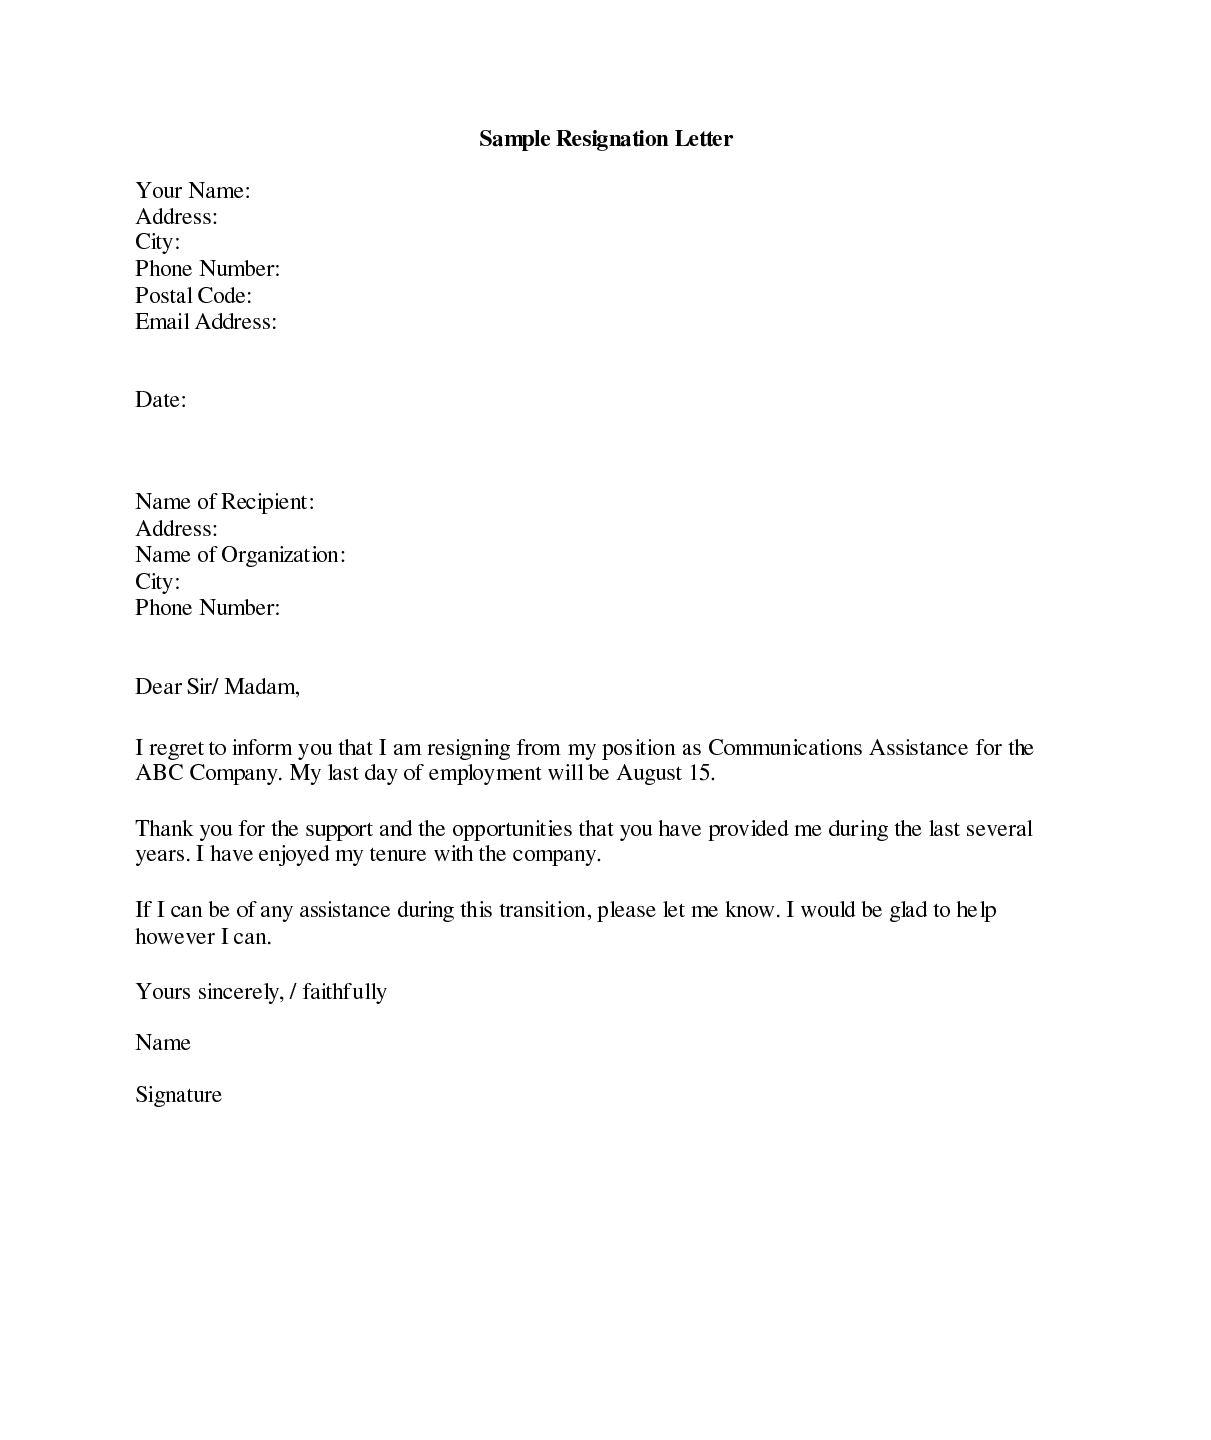 Template of resignation letter